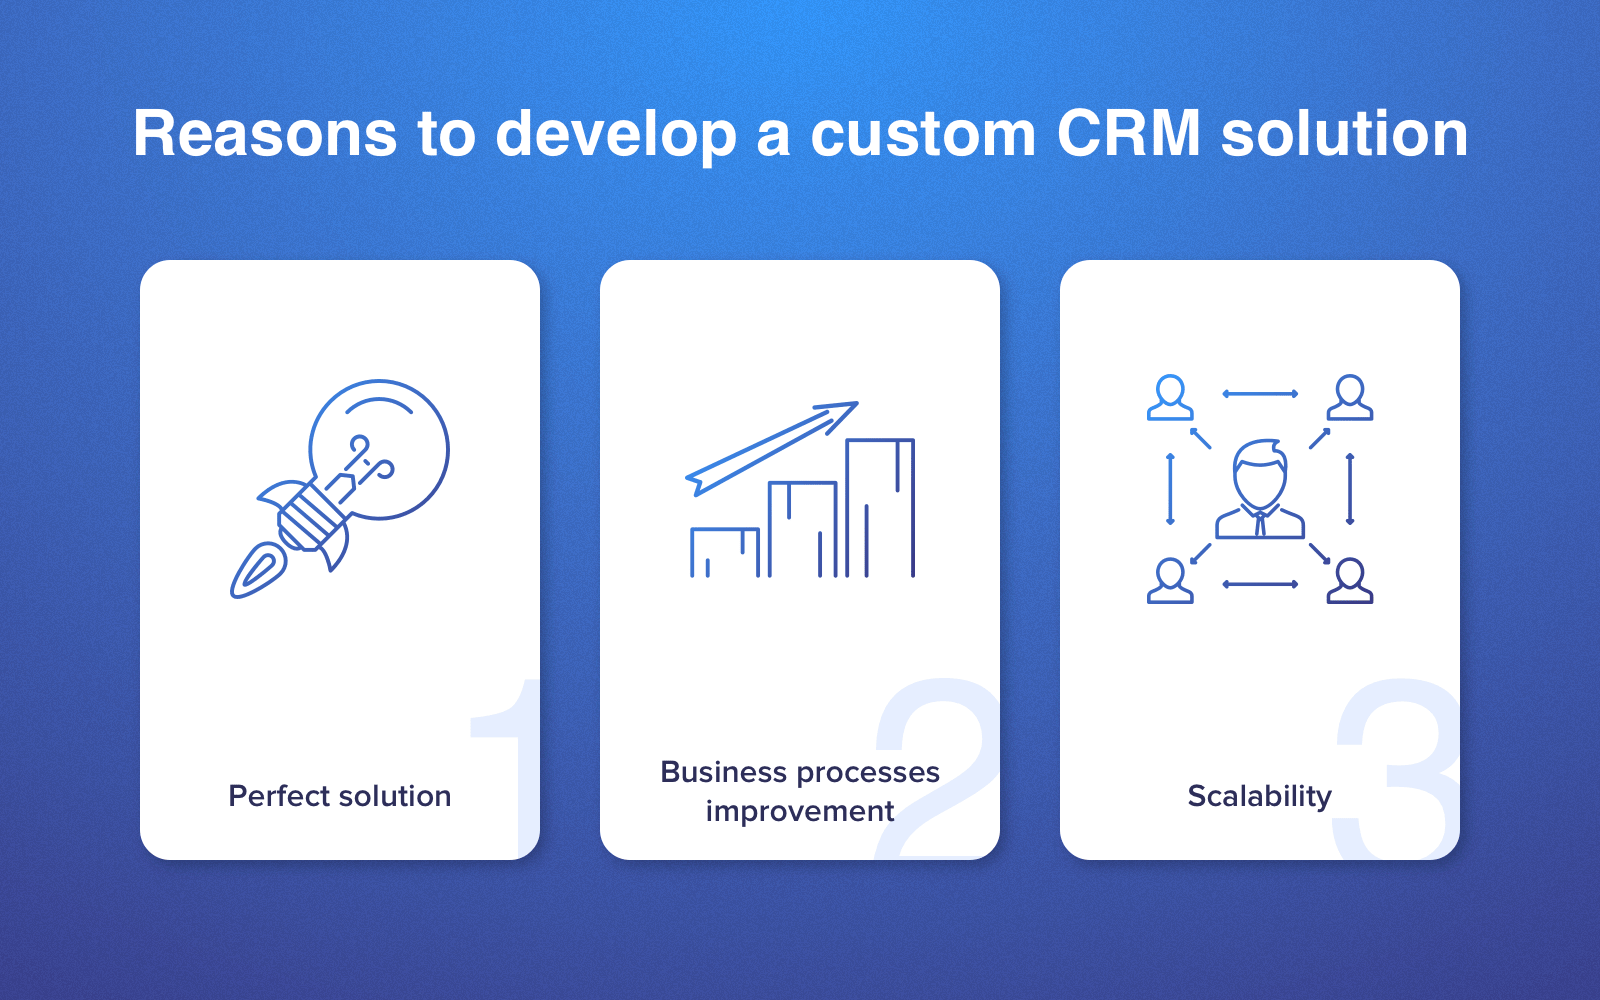 Reasons to build a custom CRM for your business